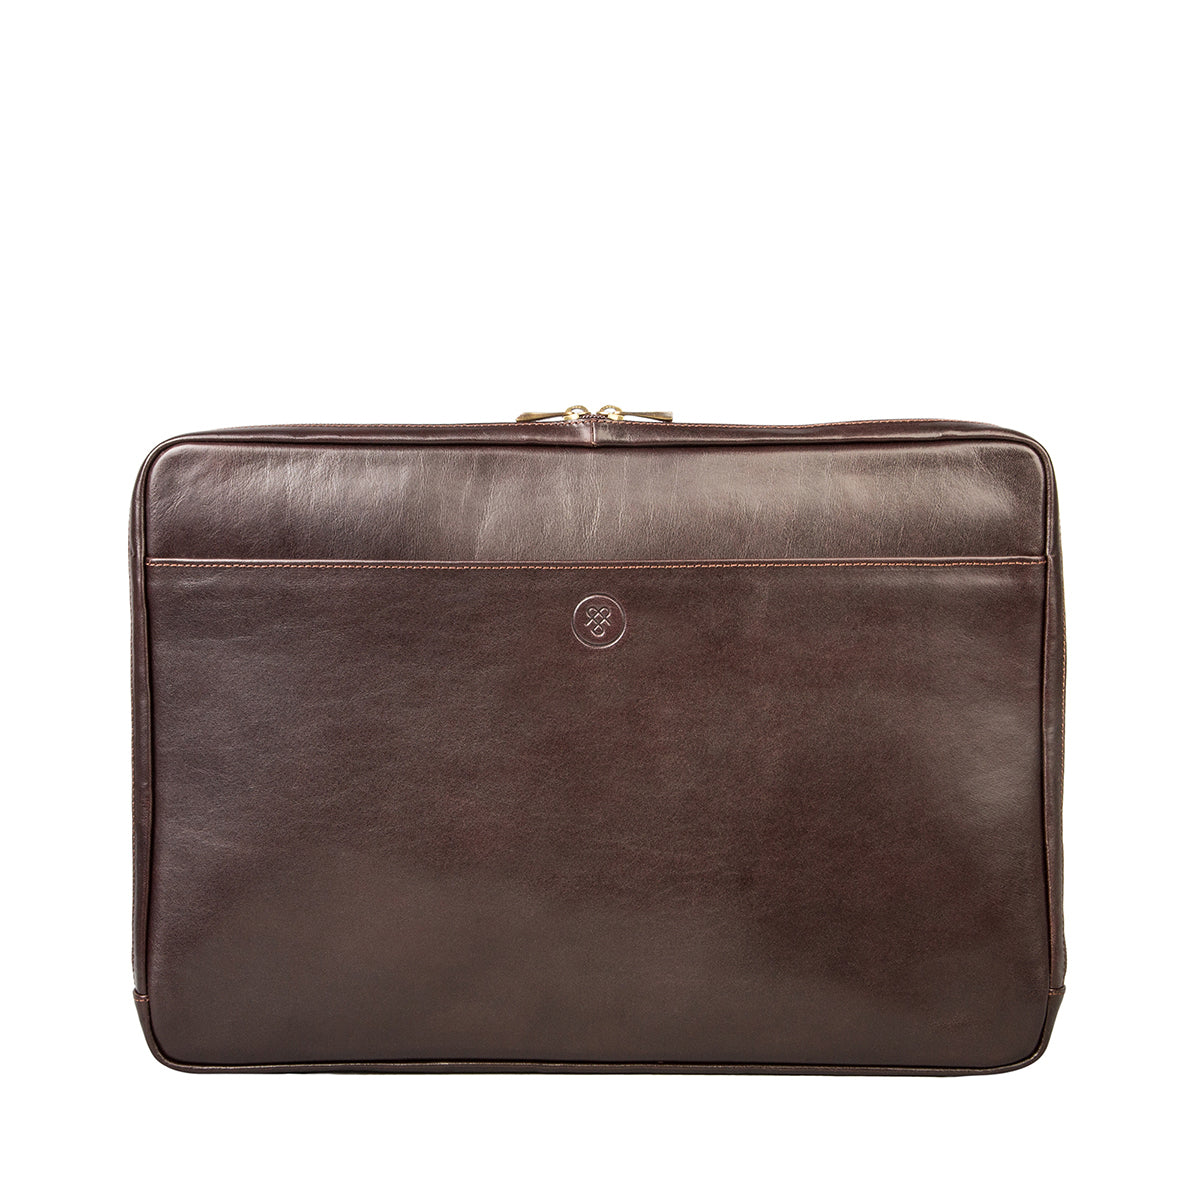 Image 2 of the 'Davoli' 17 Inch Brown Veg-Tanned Leather Laptop Bag